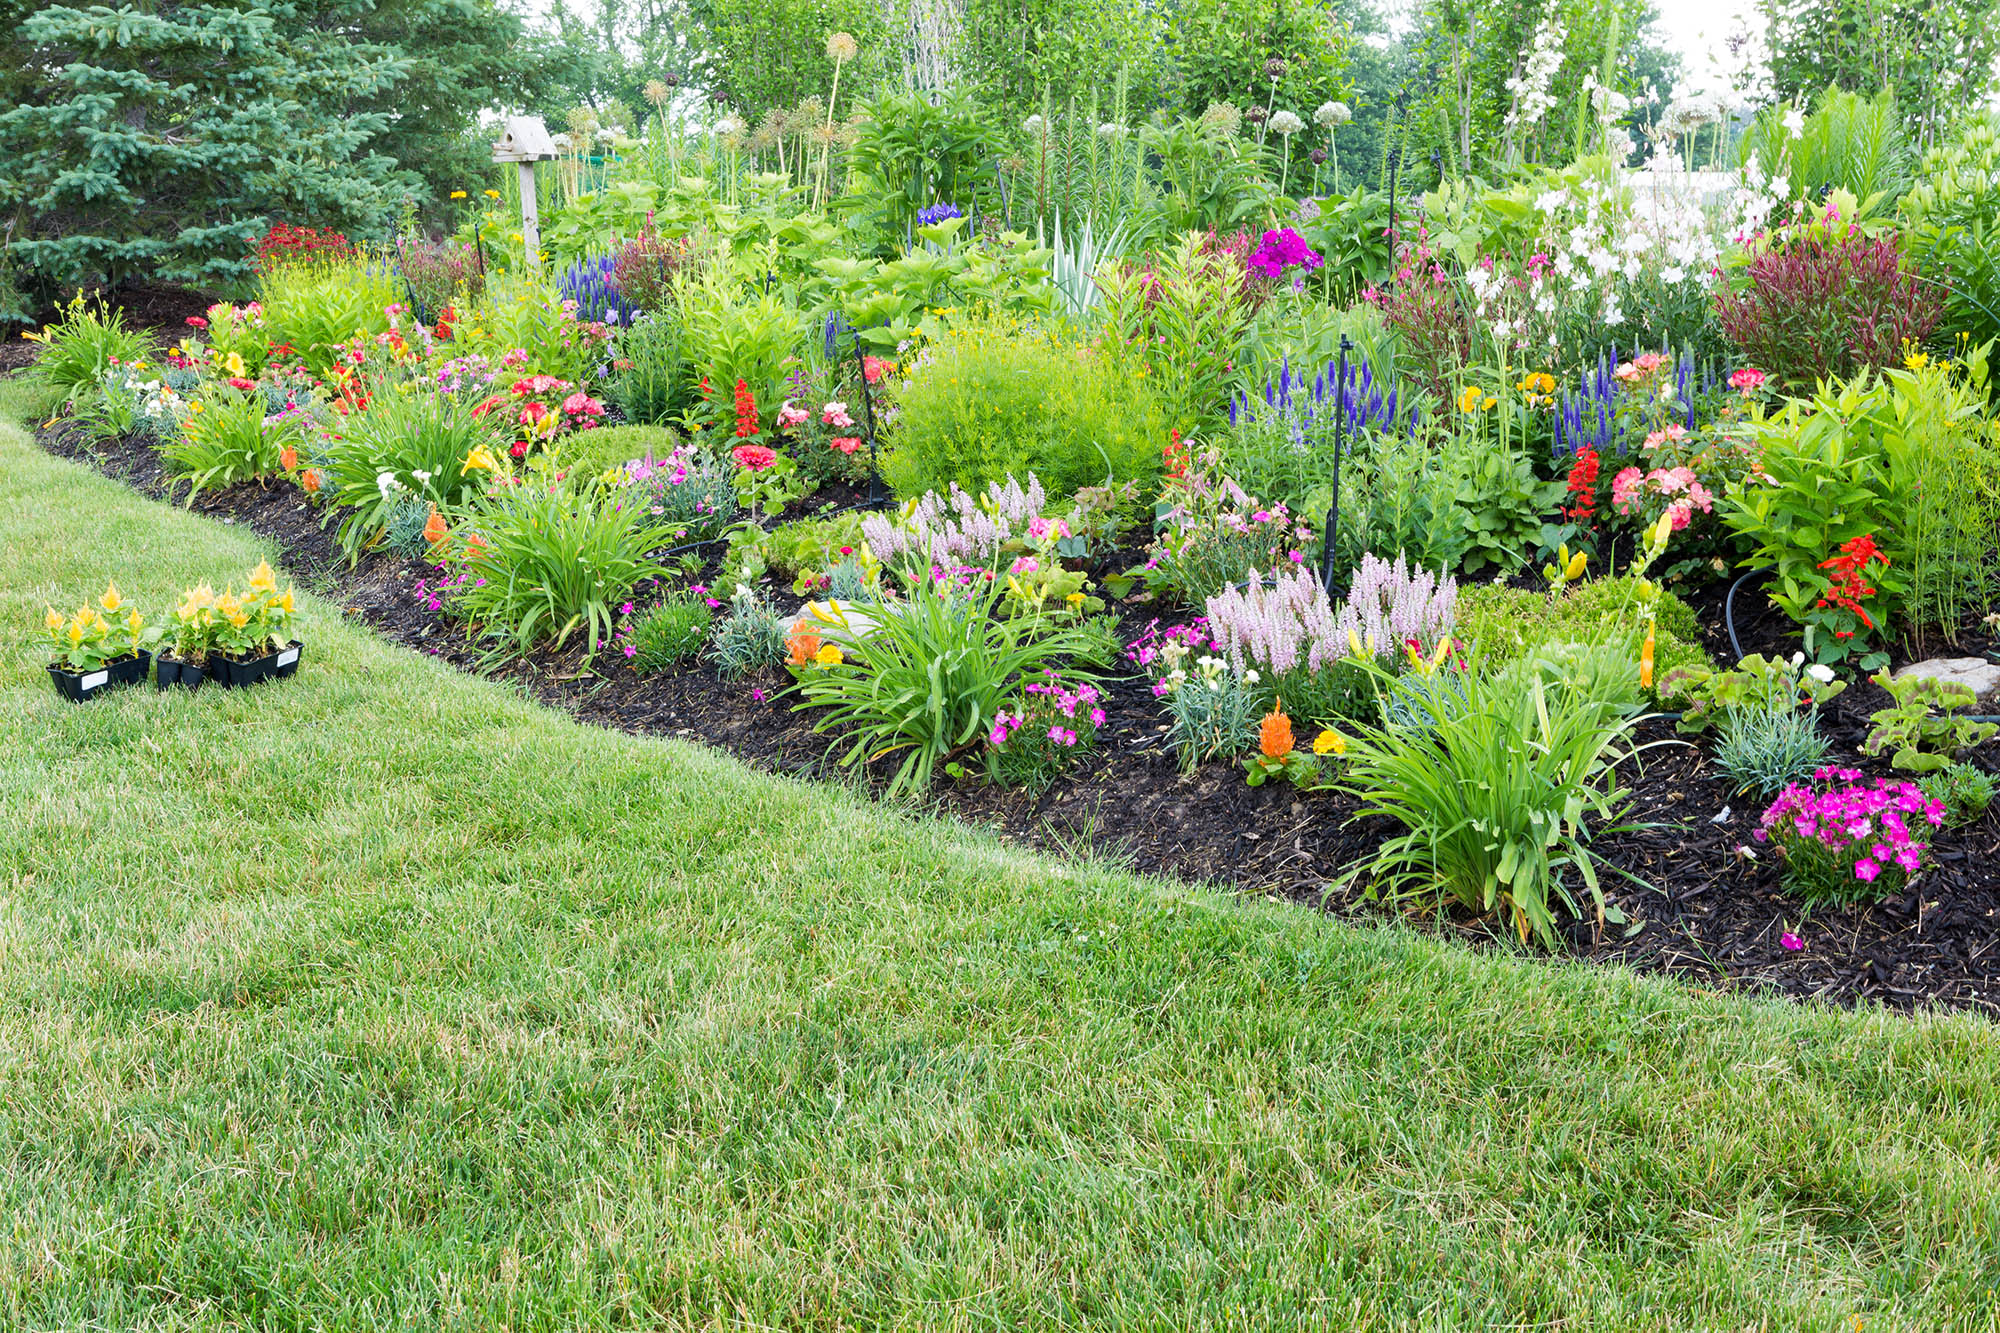 Spring Garden Planning: Expressing Your Personality and